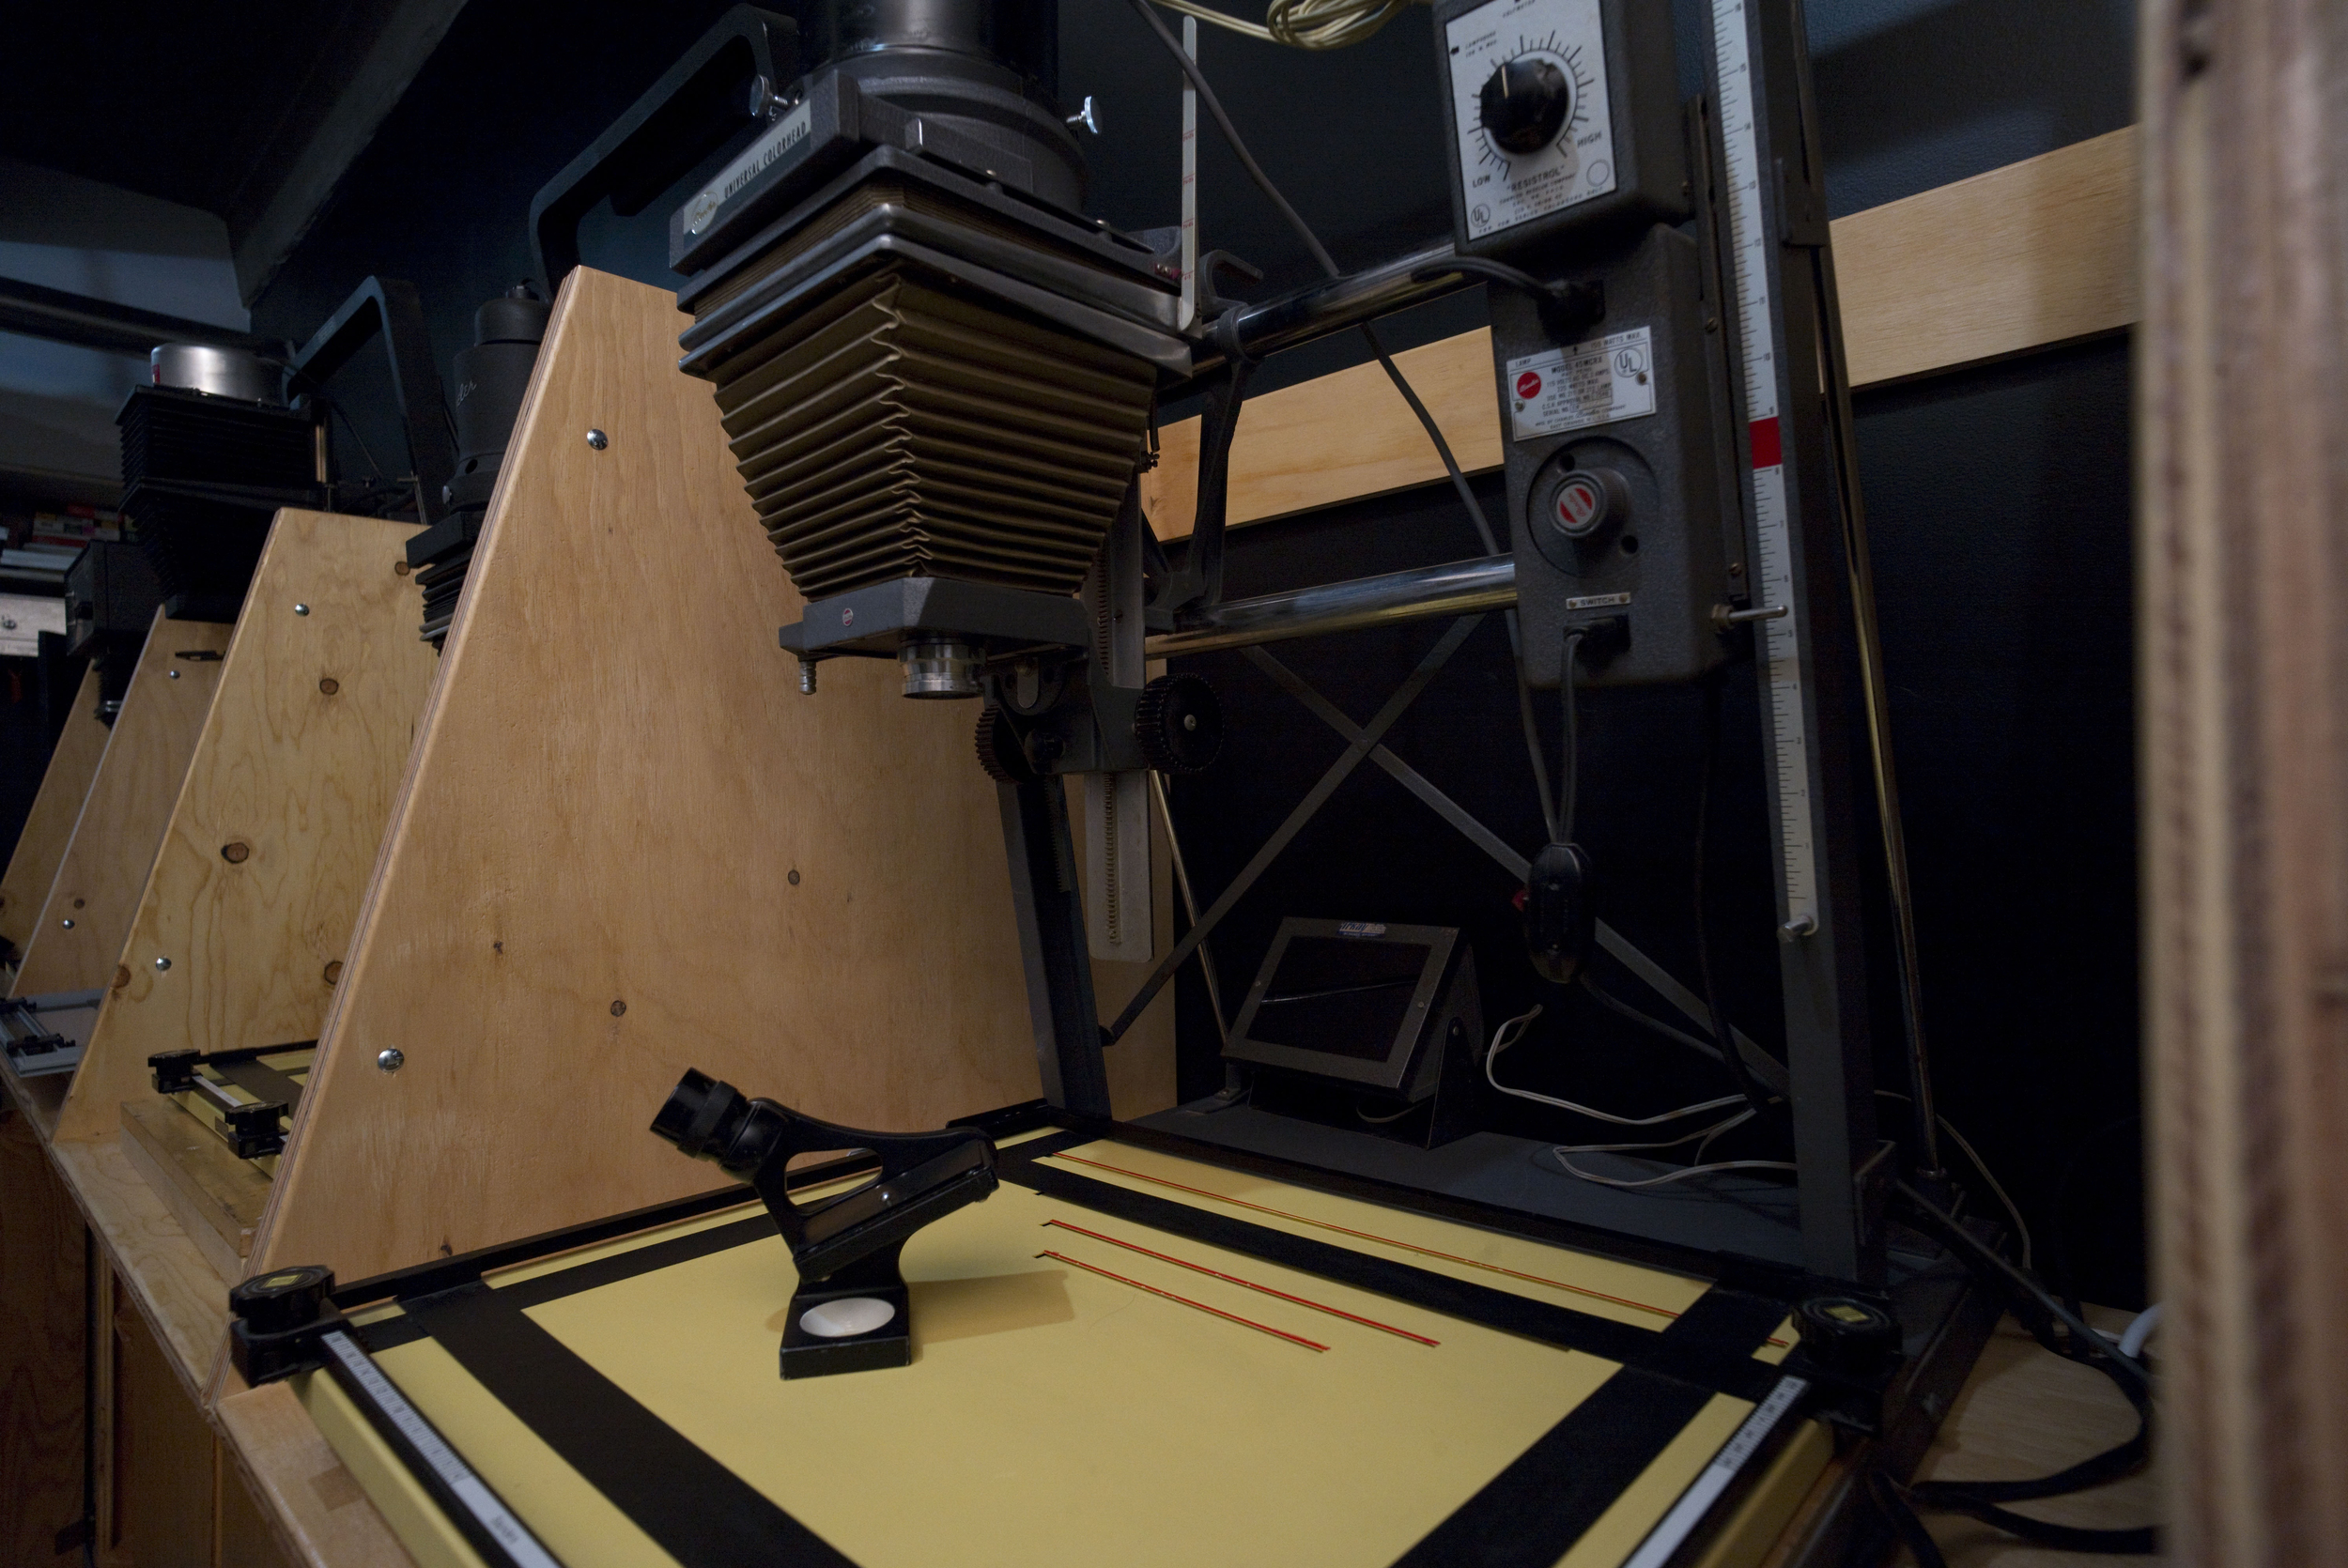 Processus Darkroom with enlargers, film processing possibilities and more